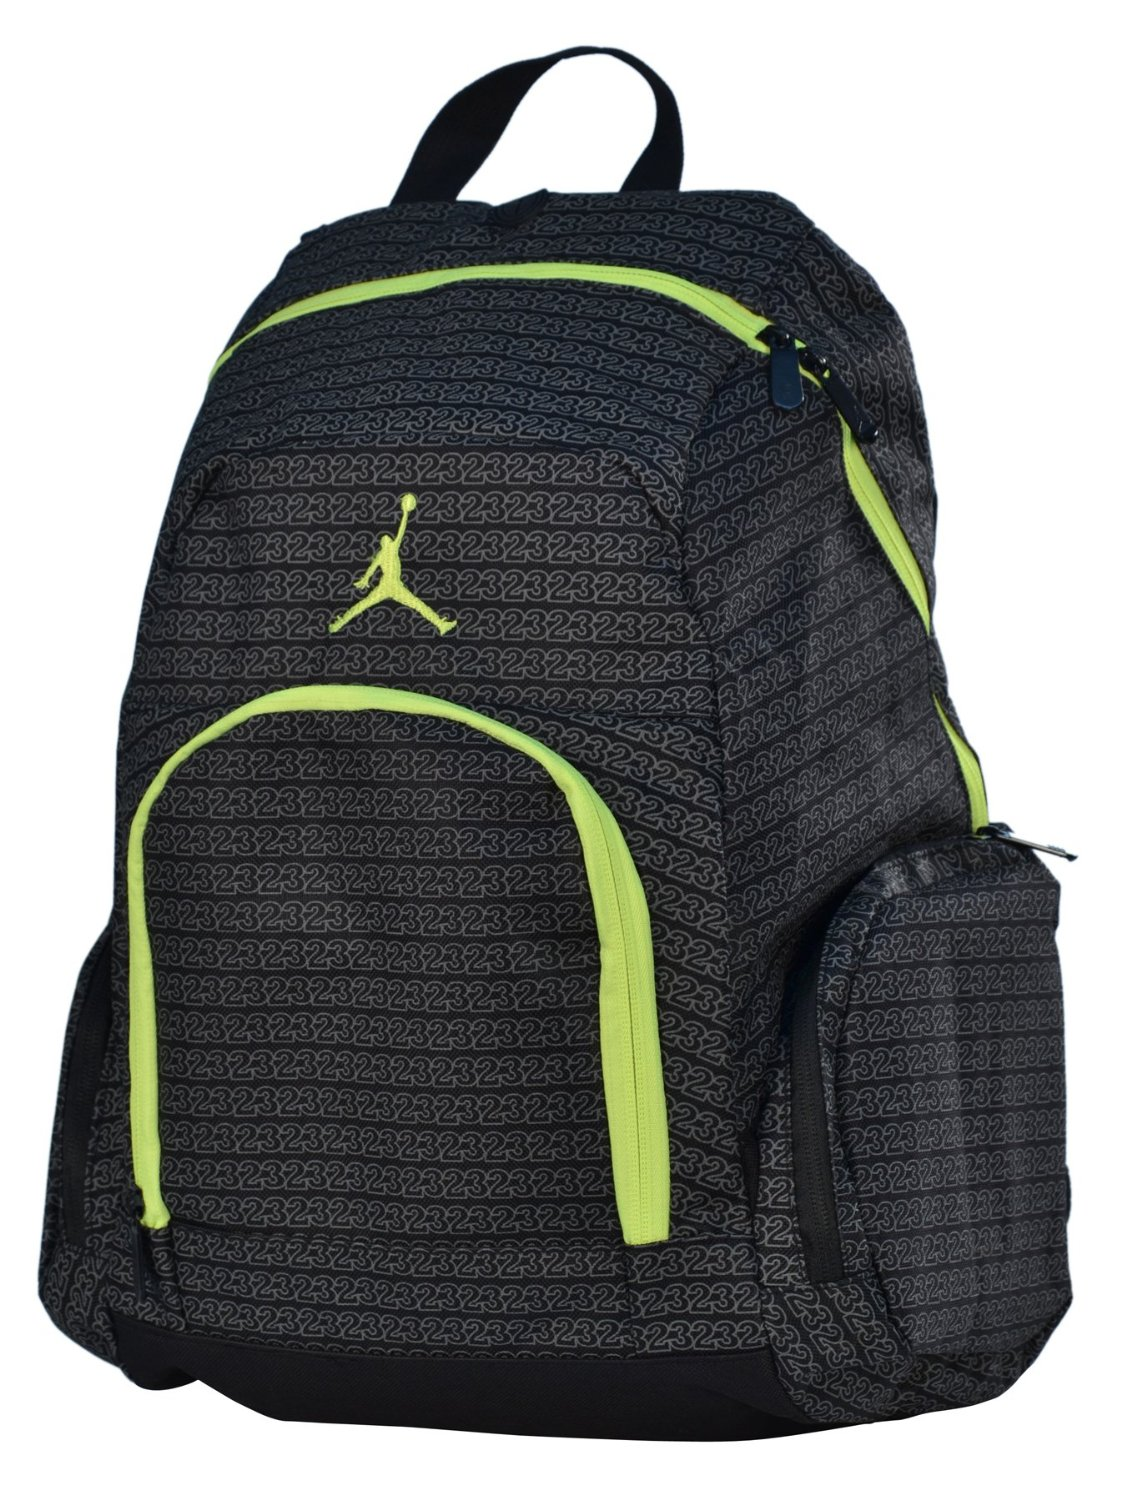 8abbca04f389 Buy Jordan Nike Air Jumpman 23 Backpack Laptop Book Bag-Black Yellow ...